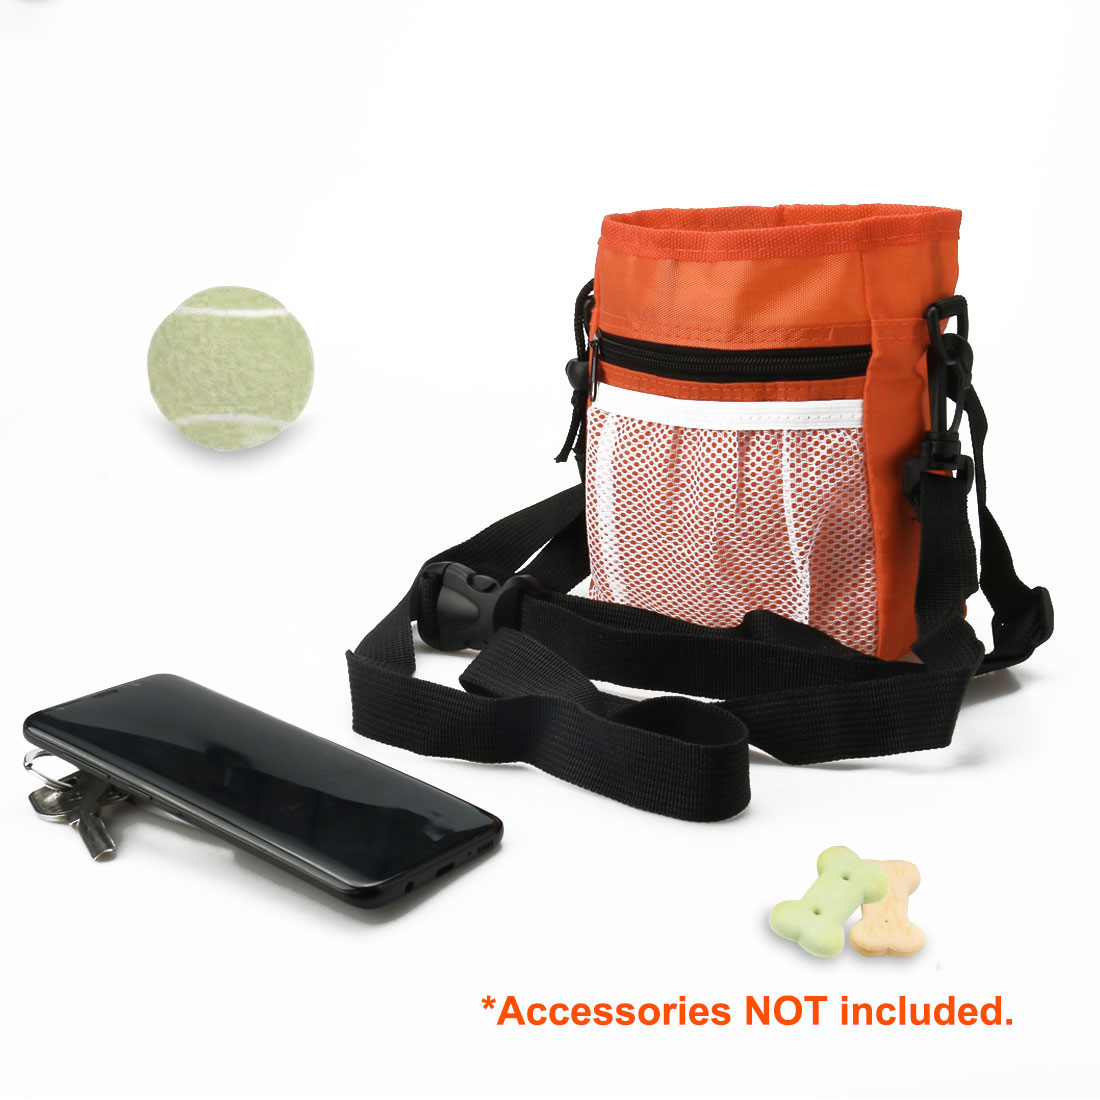 Dog Treat Training Bag Easily Carry Pets Holder Adjustable Waist Bag Orange